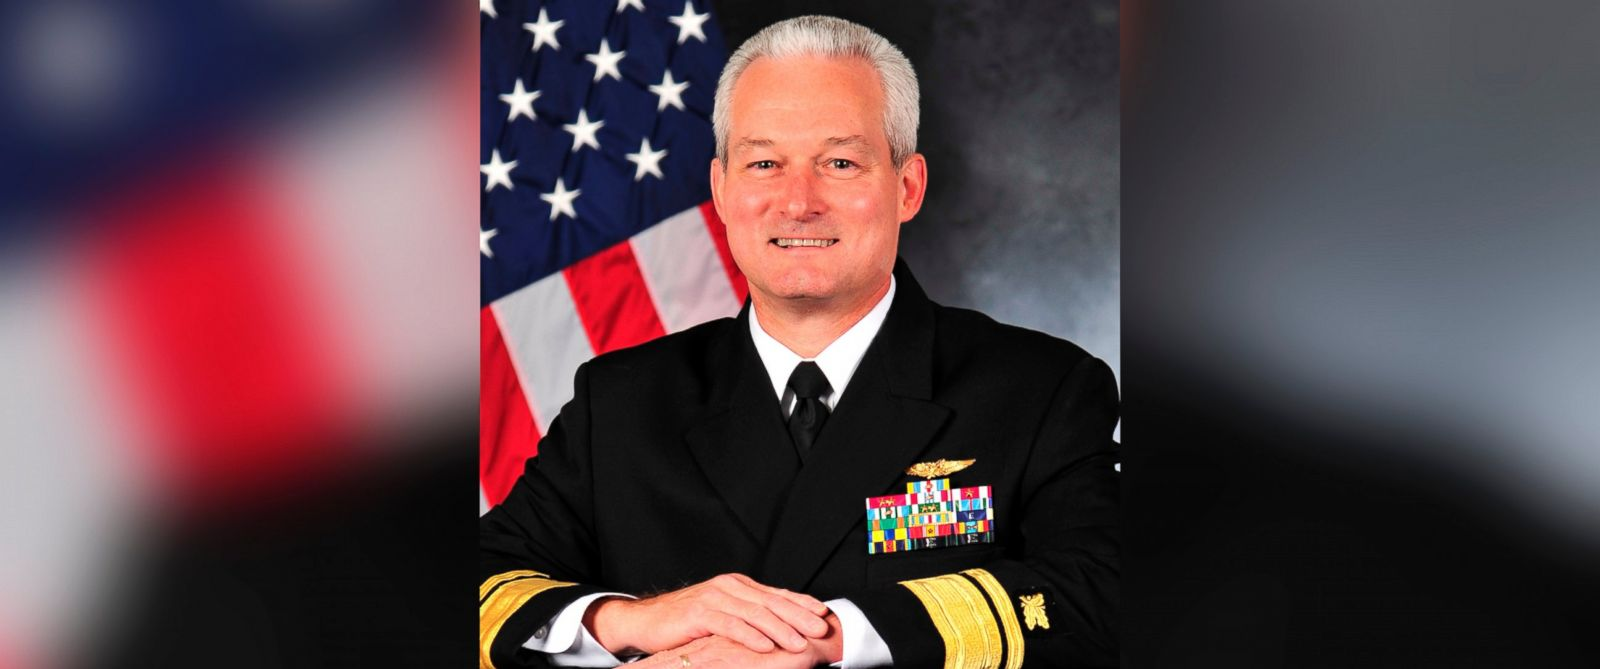 PHOTO: Rear Adm. David Baucom was found guilty of violations of conduct unbecoming an officer and gentleman and disorderly conduct/drunkenness under the Uniform Code of Military Justice, Dec. 7, 2015.